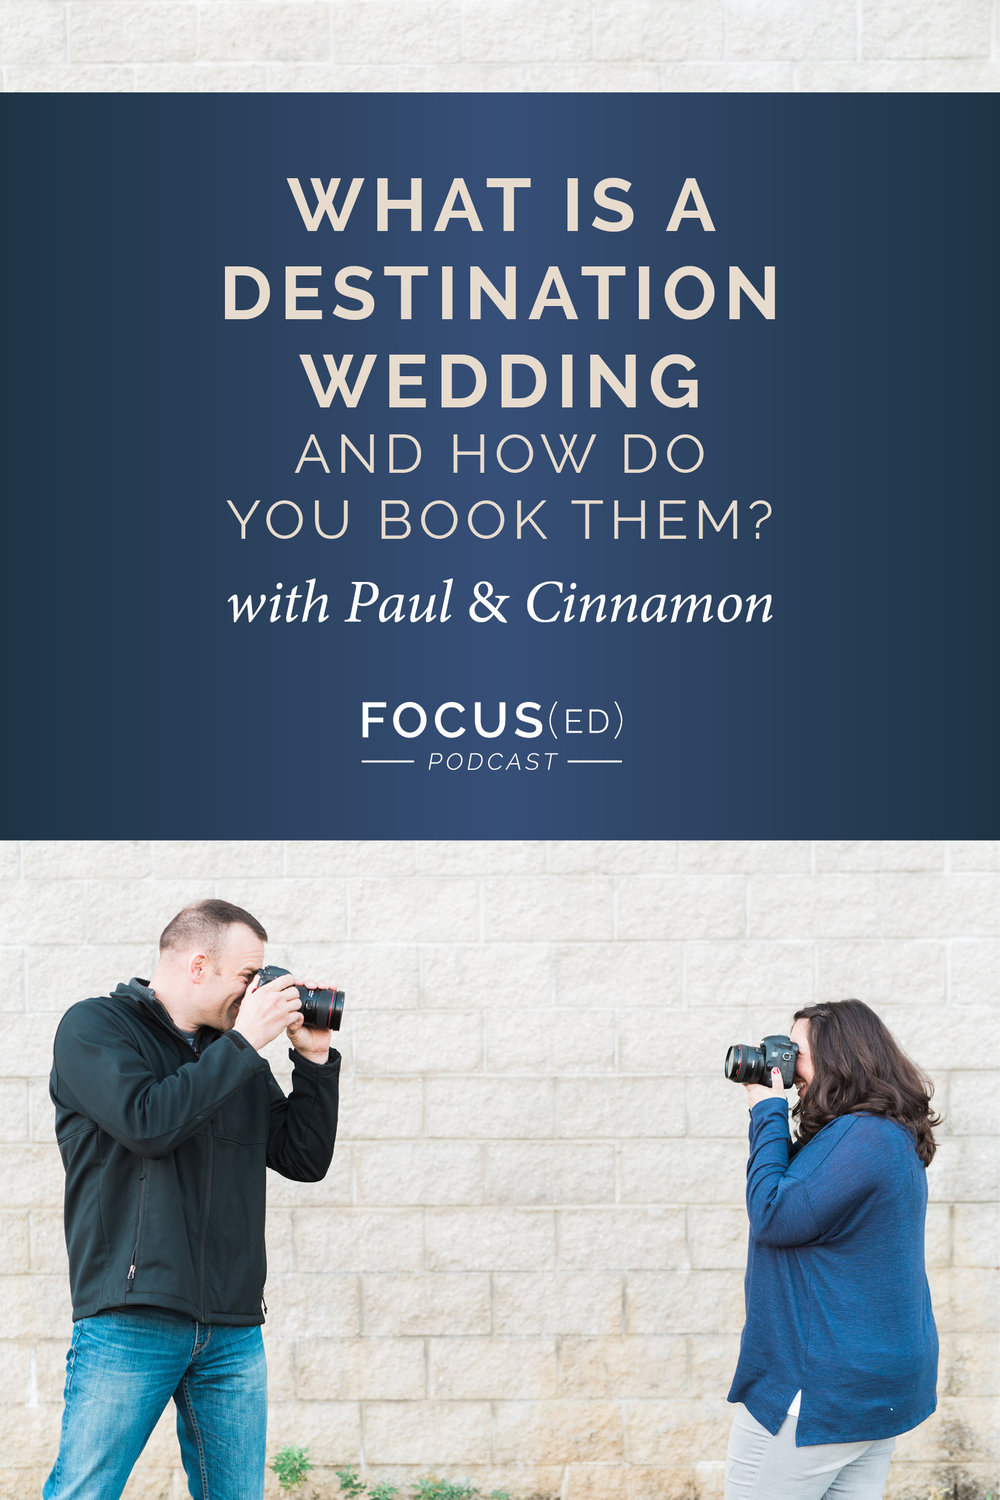 It's time to understand the destination wedding world.  |  Focus(ed) Podcast 055